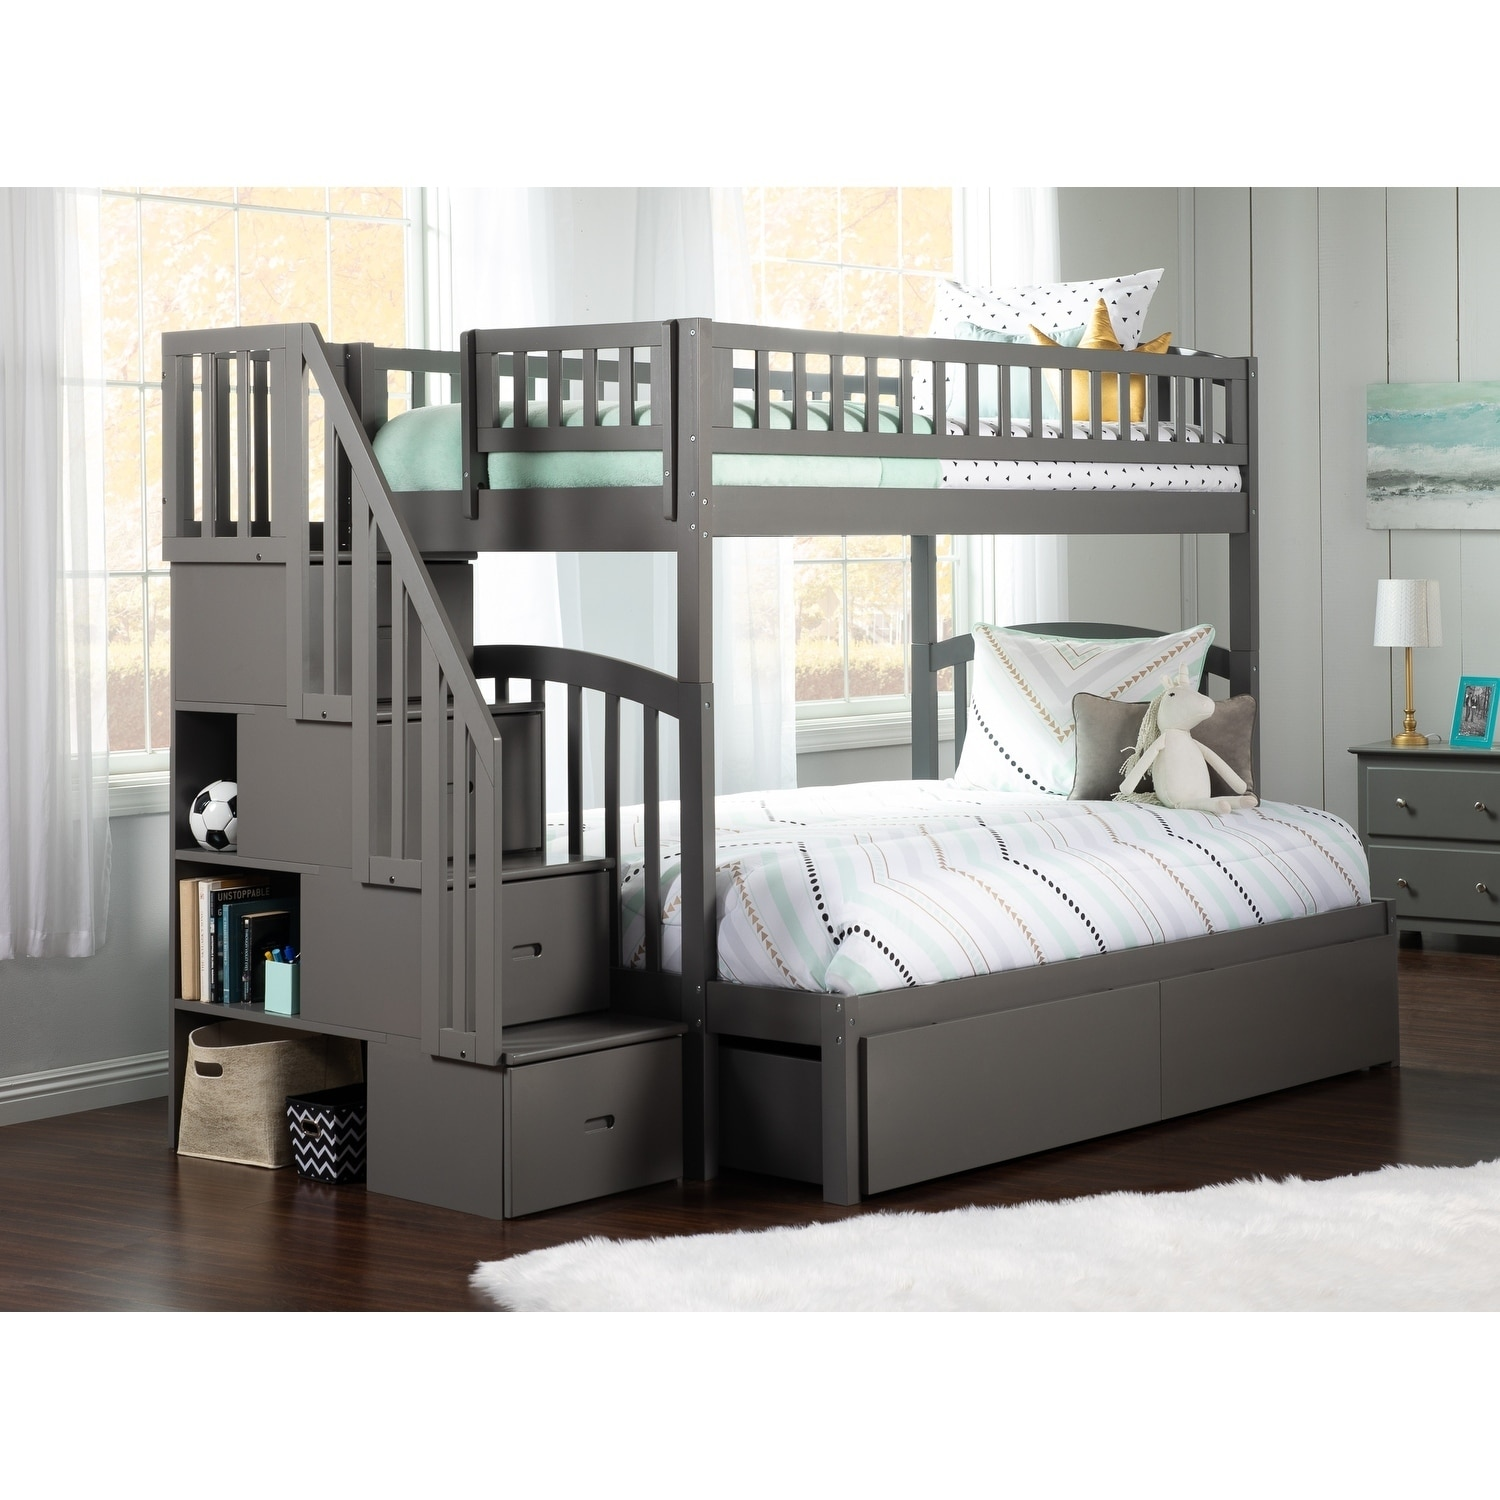 Westbrook Staircase Bunk Twin Over Full With 2 Urban Bed Drawers In Grey Overstock 24168300